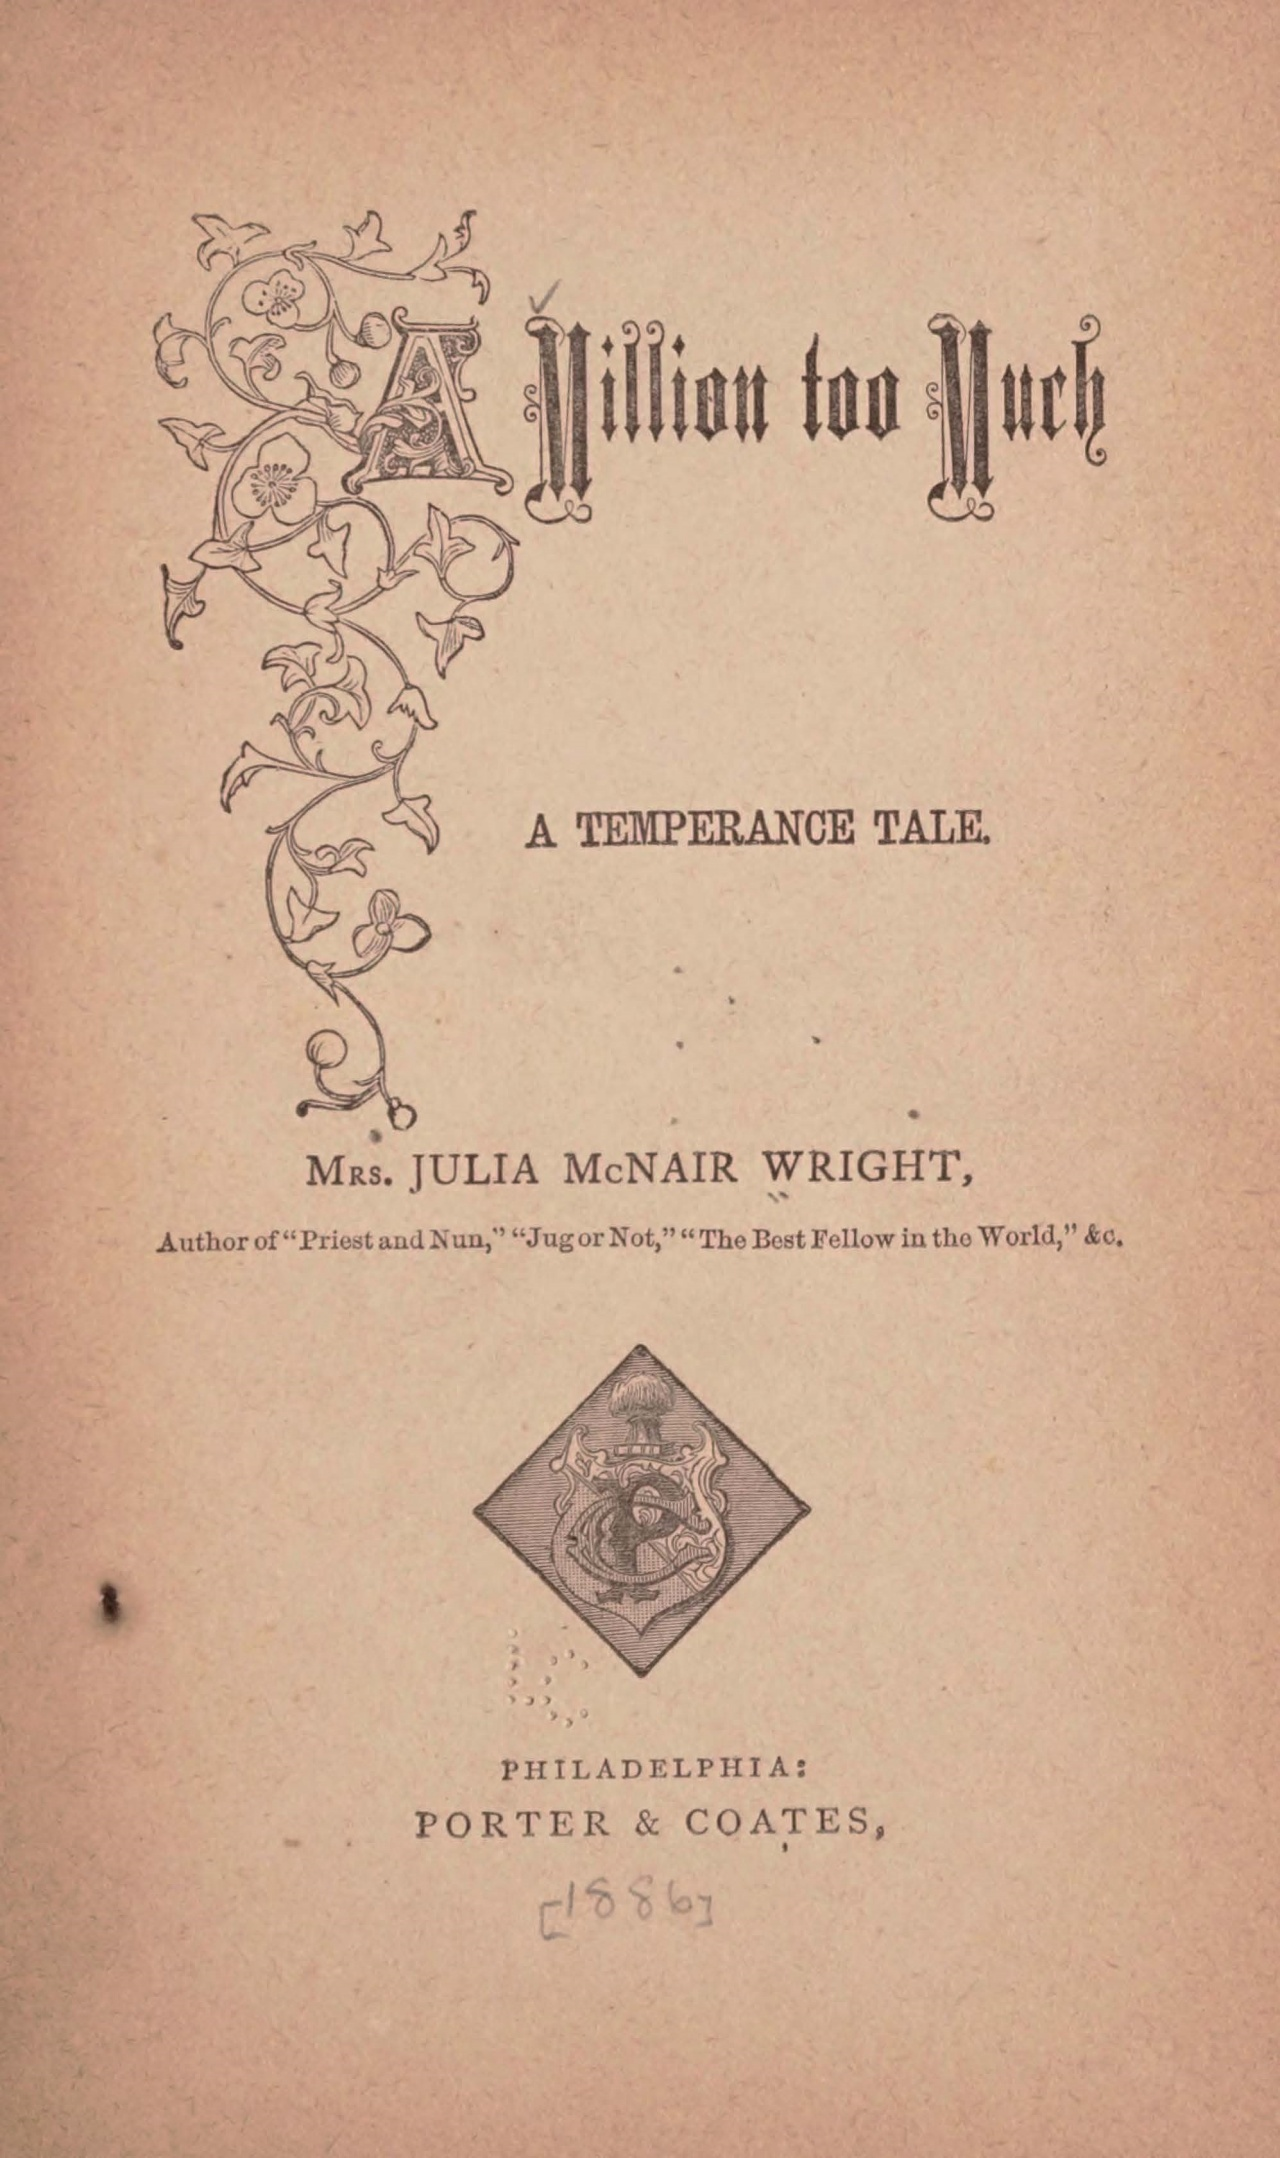 Wright, Julia McNair, A Million Too Much Title Page.jpg